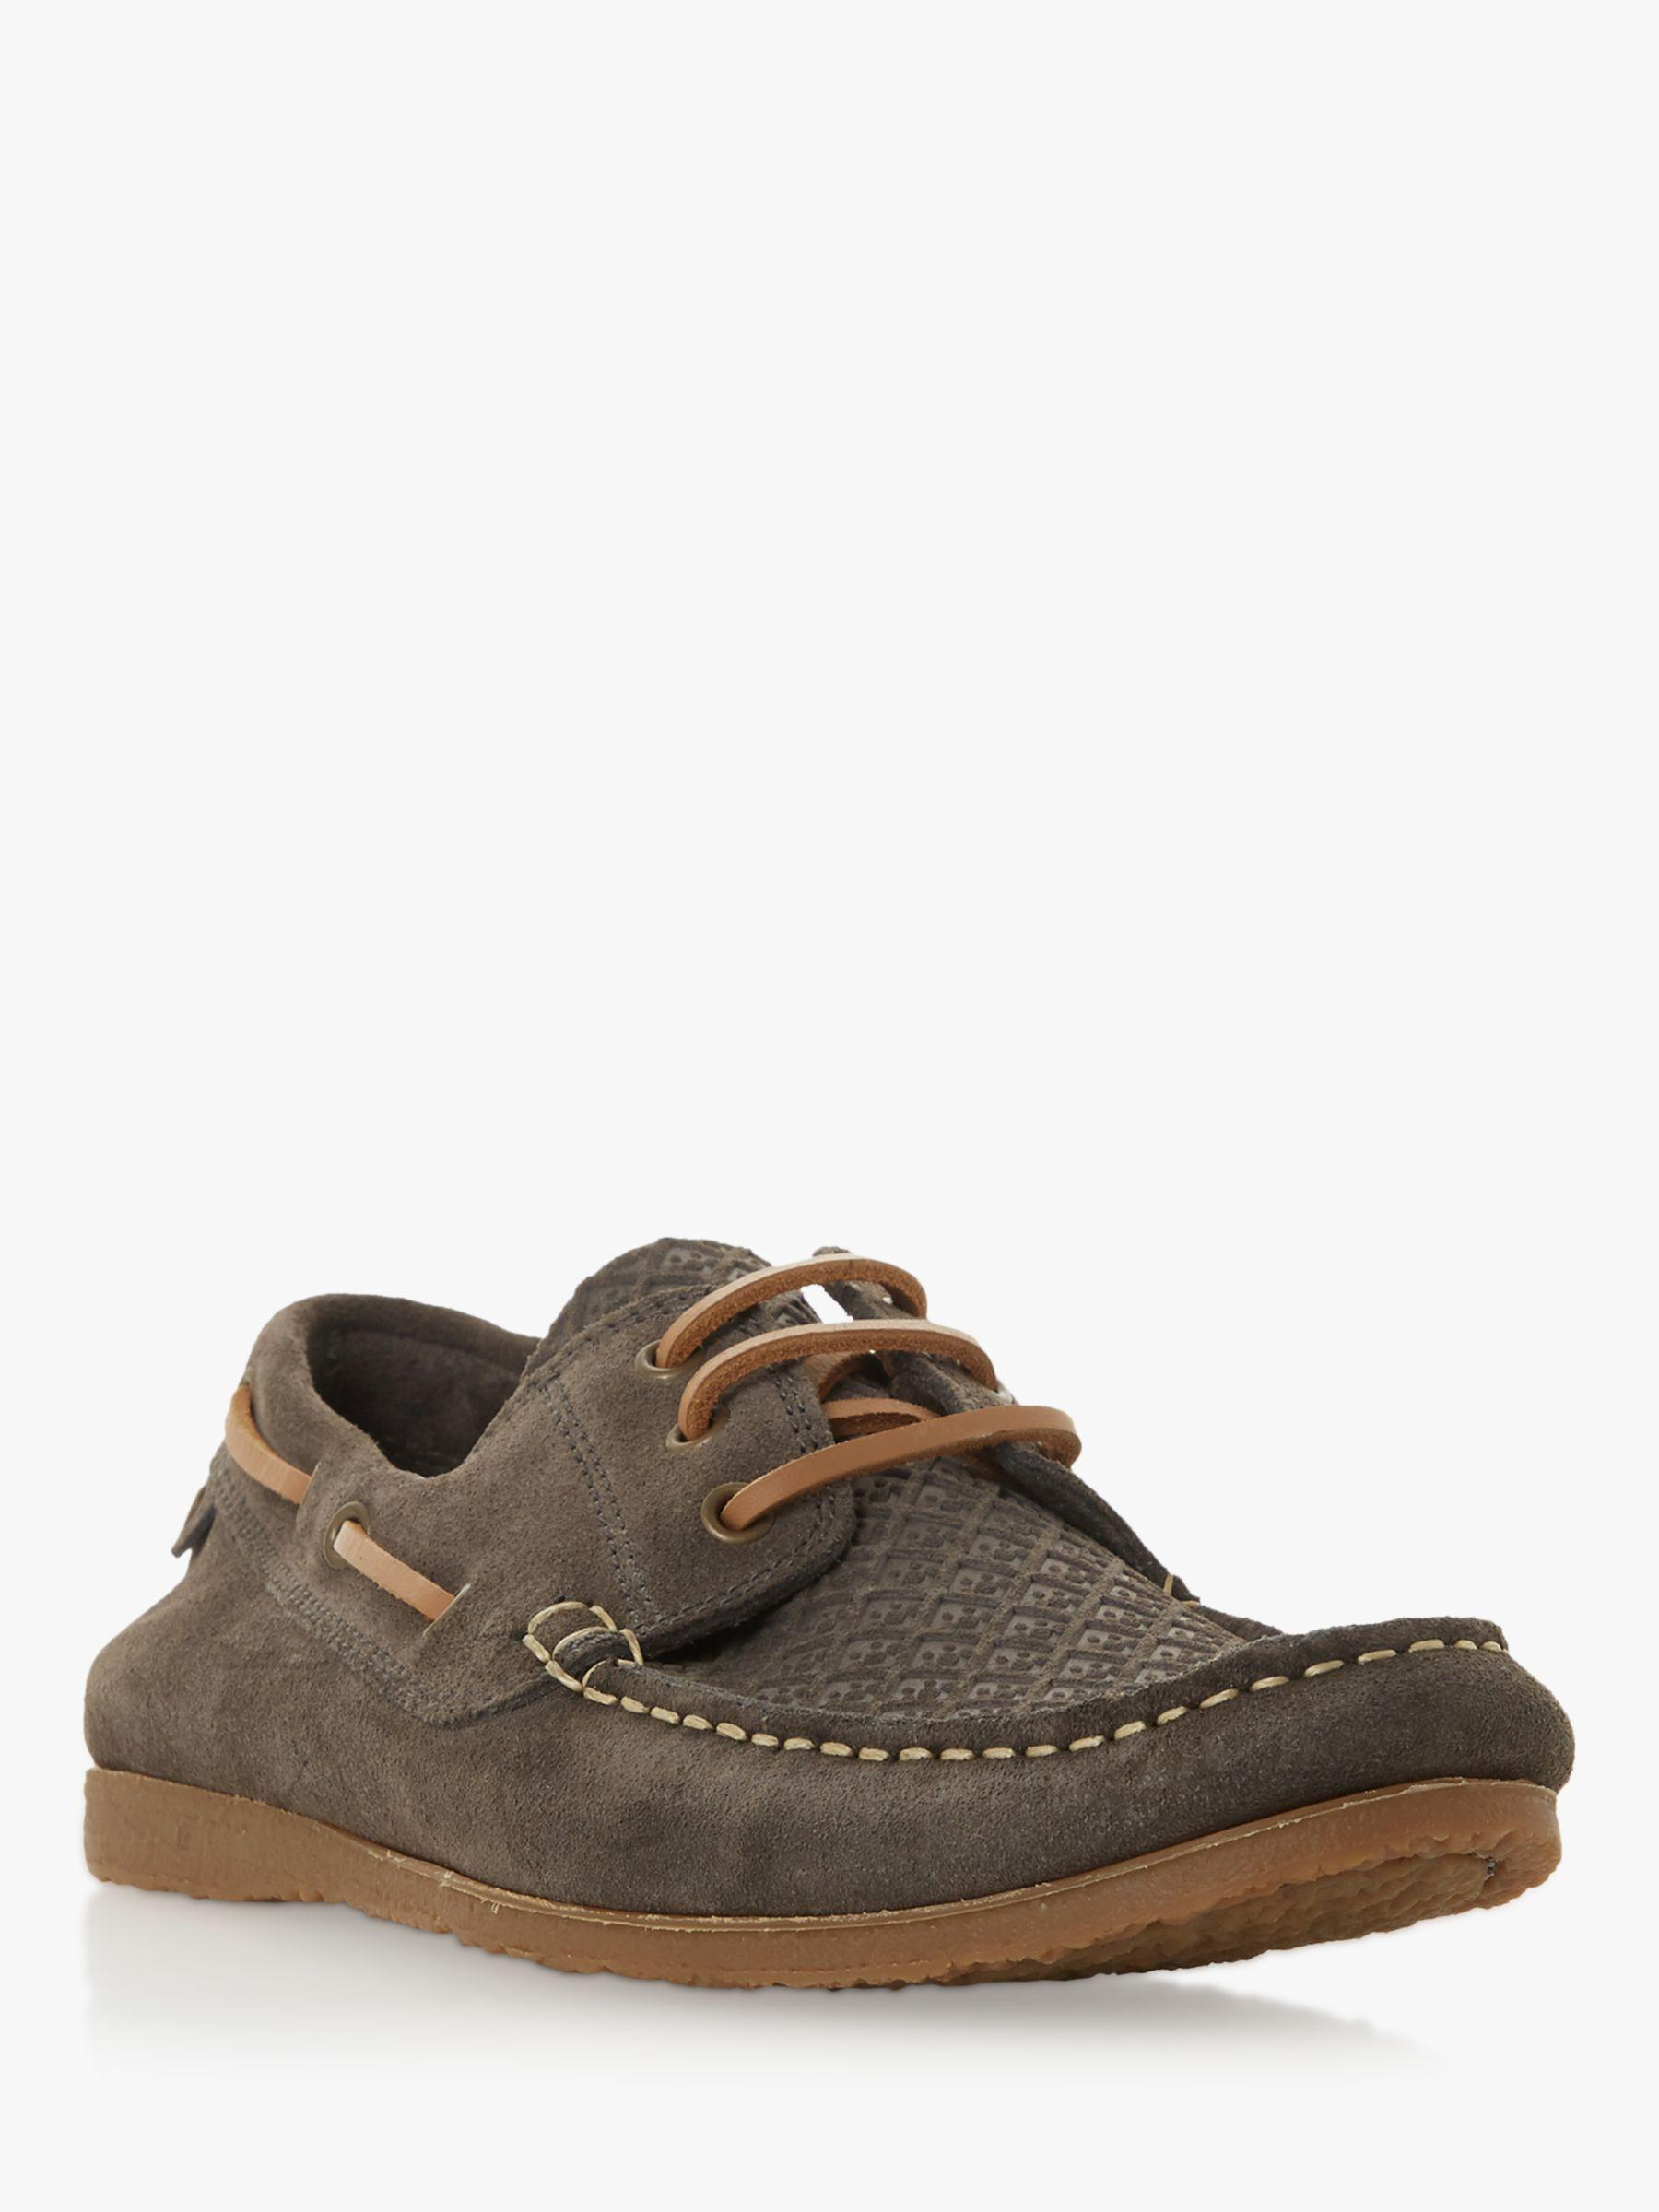 4e6648595 Bertie Bahamas Suede Boat Shoes in Gray for Men - Save 54% - Lyst